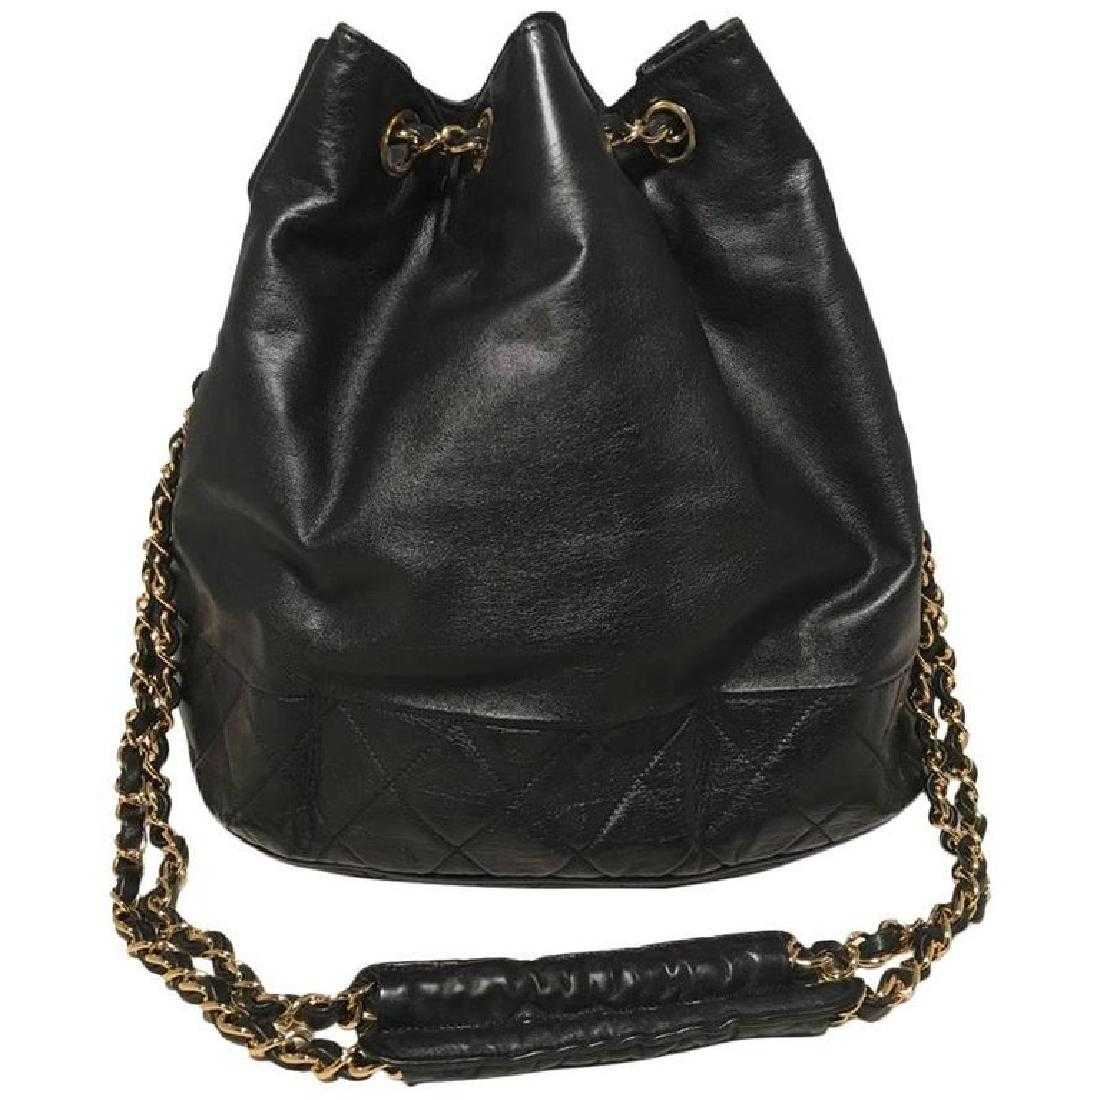 92bcb6f14aa74e Chanel Vintage Black Leather Drawstring Bucket Shoulder